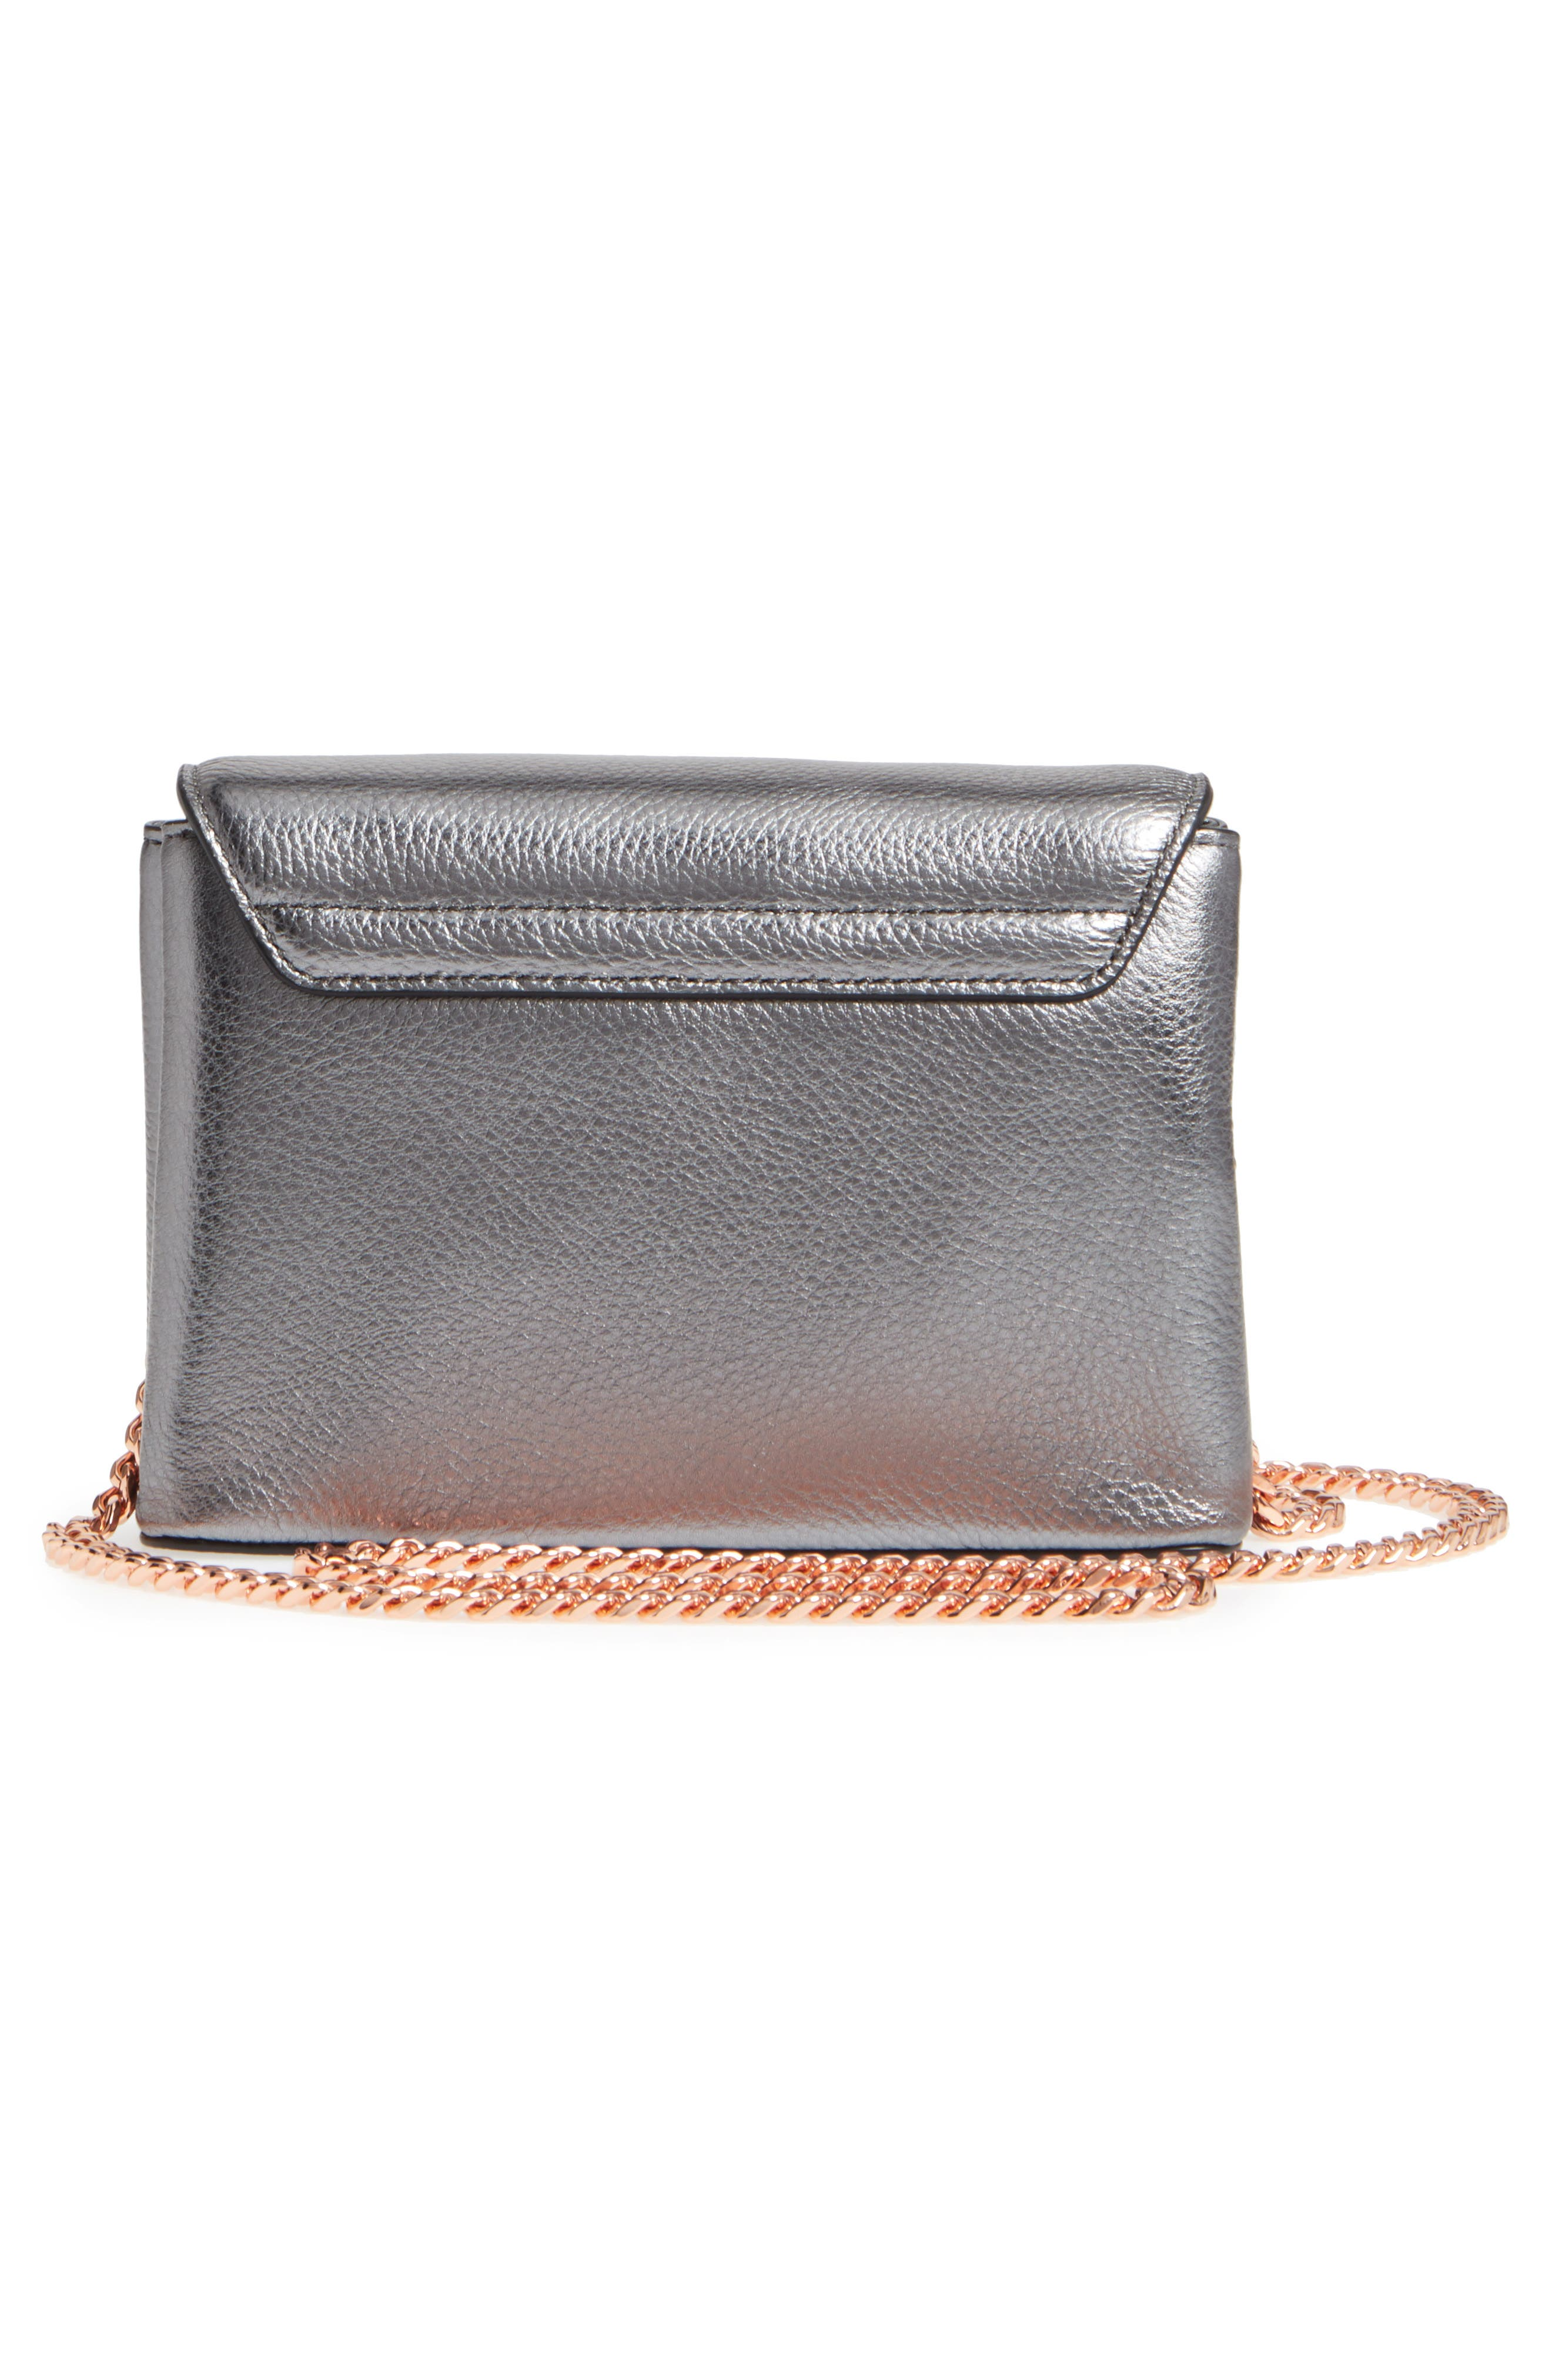 Lupiin Metallic Leather Crossbody Bag,                             Alternate thumbnail 3, color,                             022